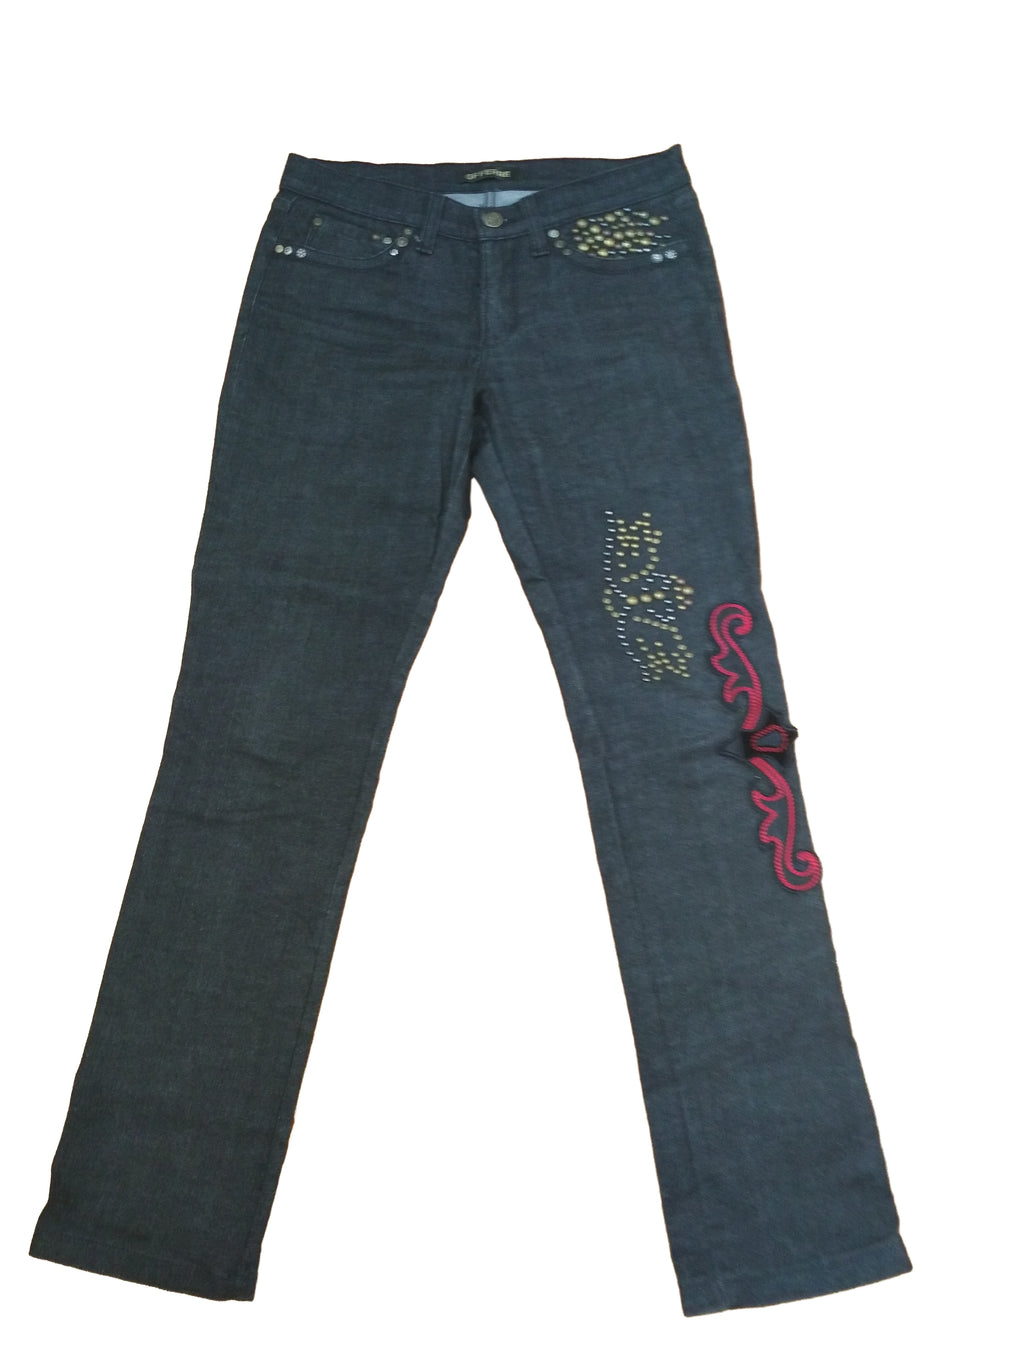 Gianfranco Ferré Jeans with Applique Size 38 (EU)